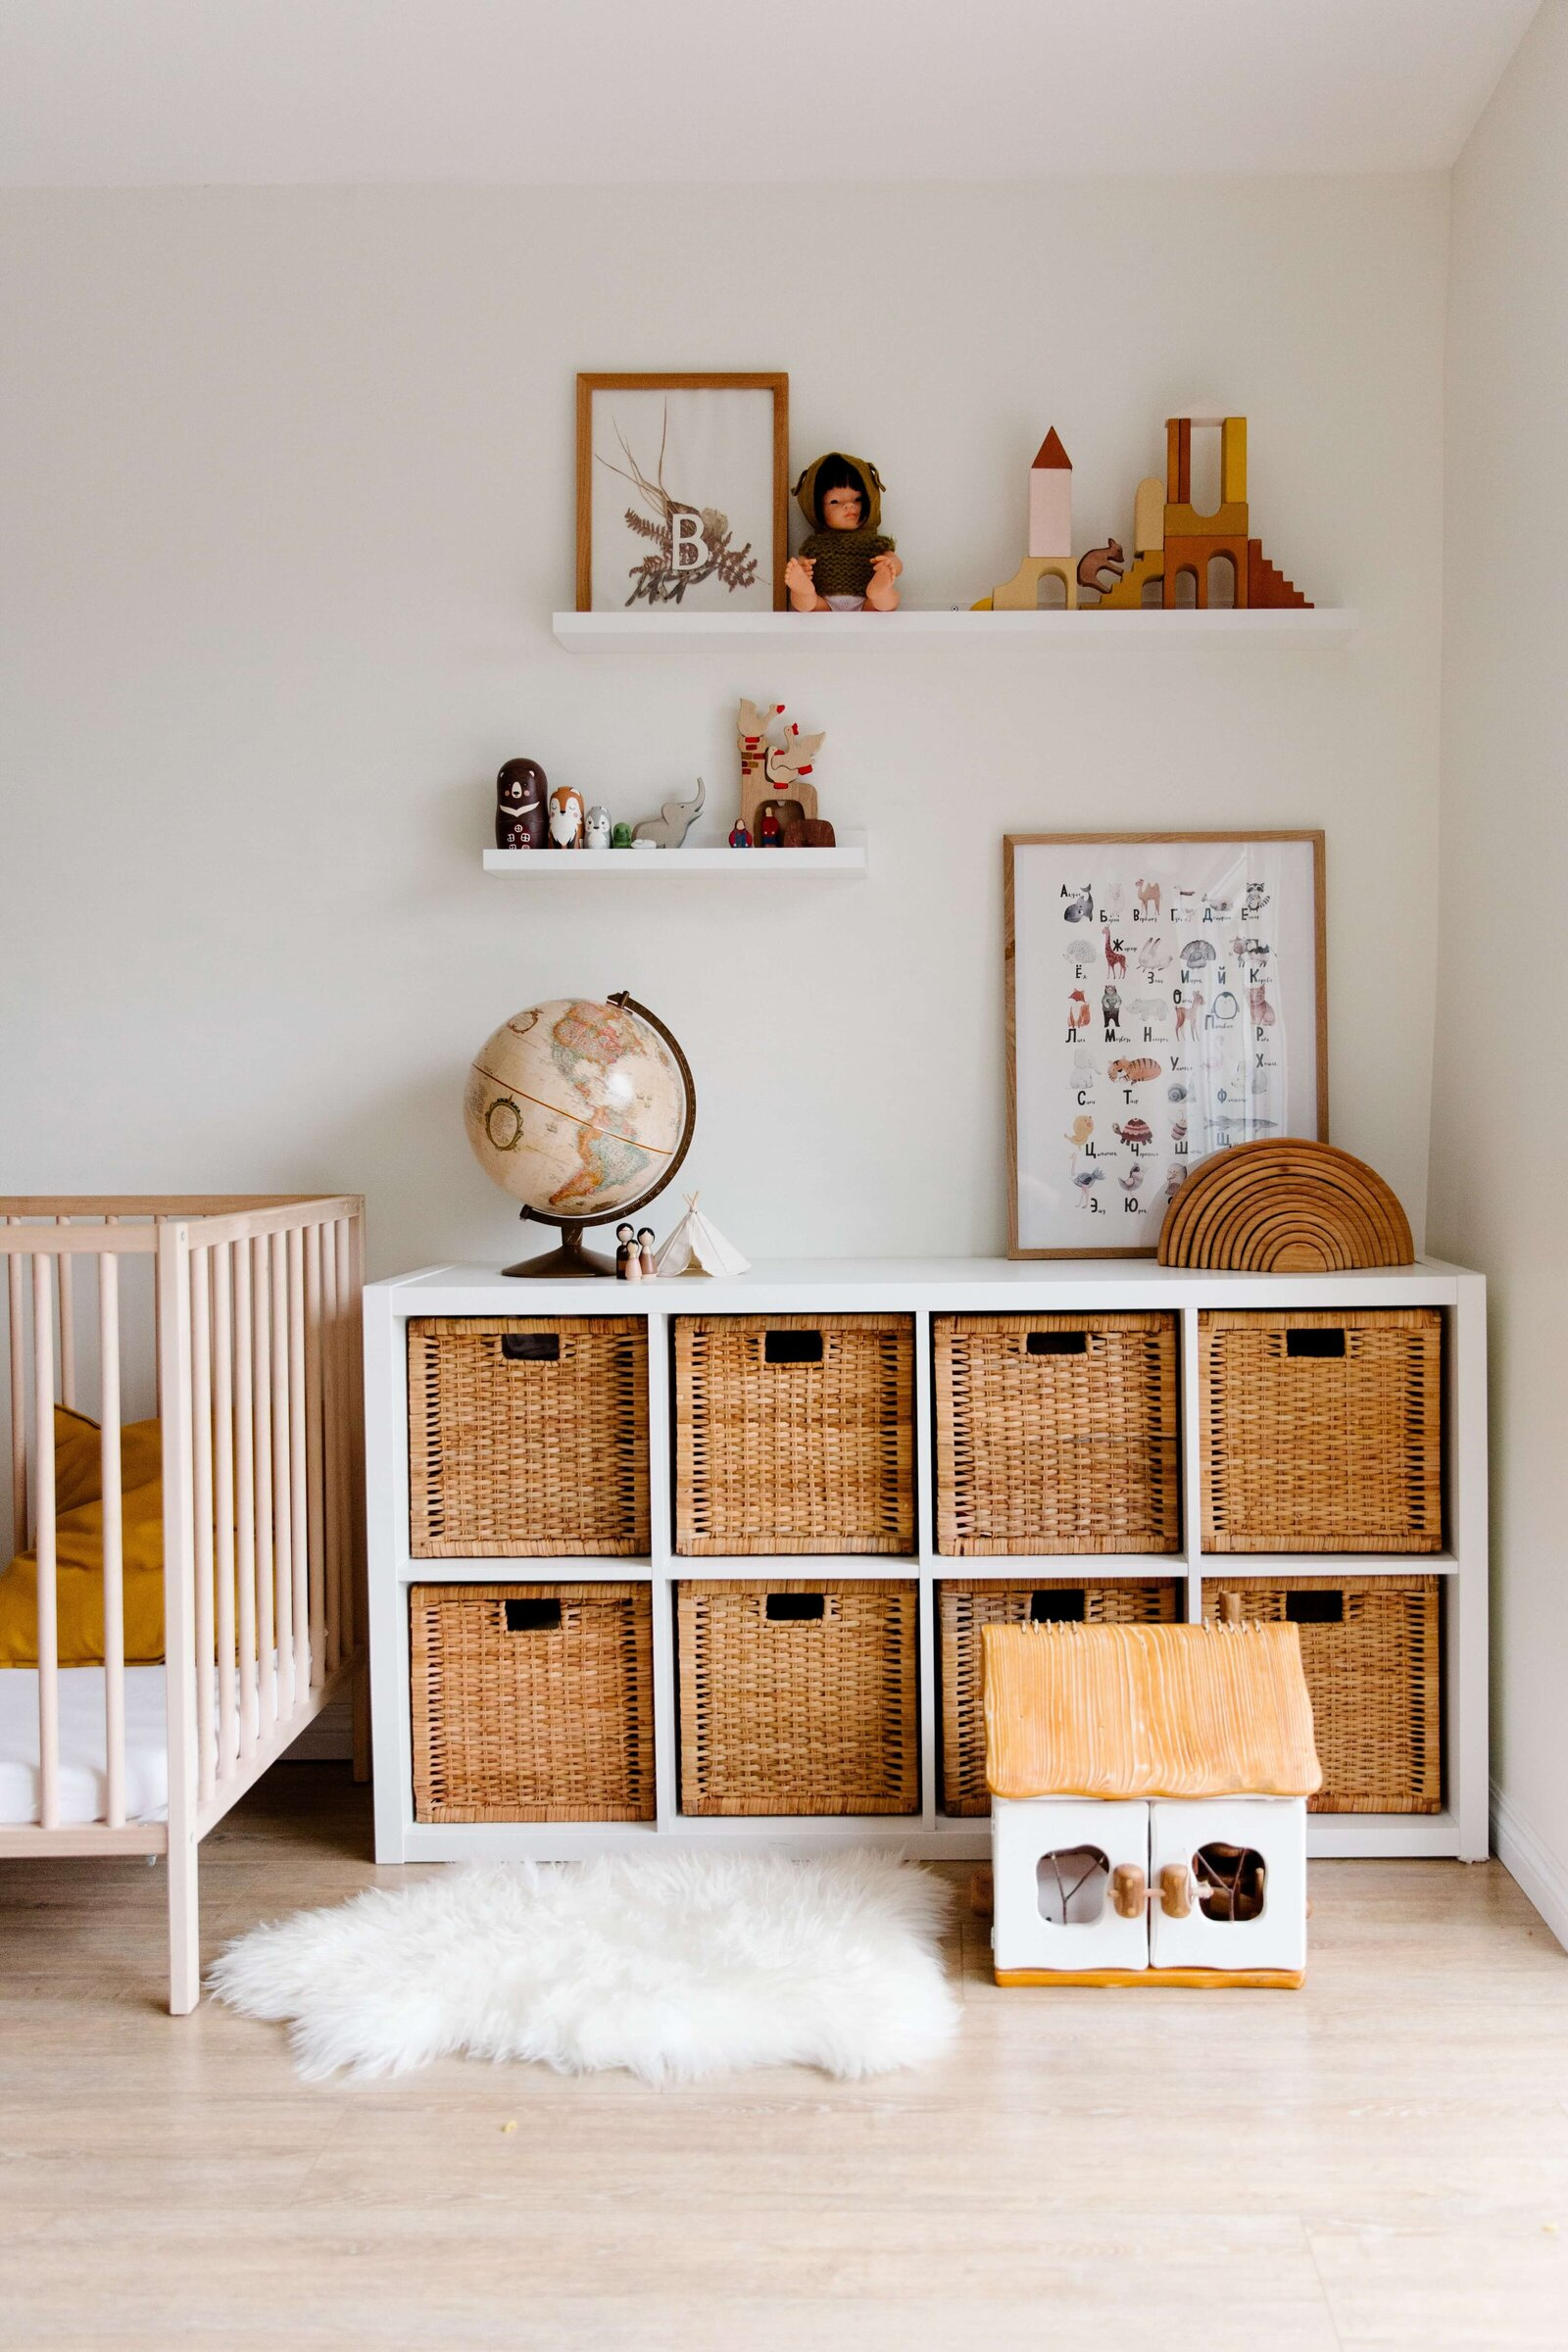 Stock 19 nursery interior